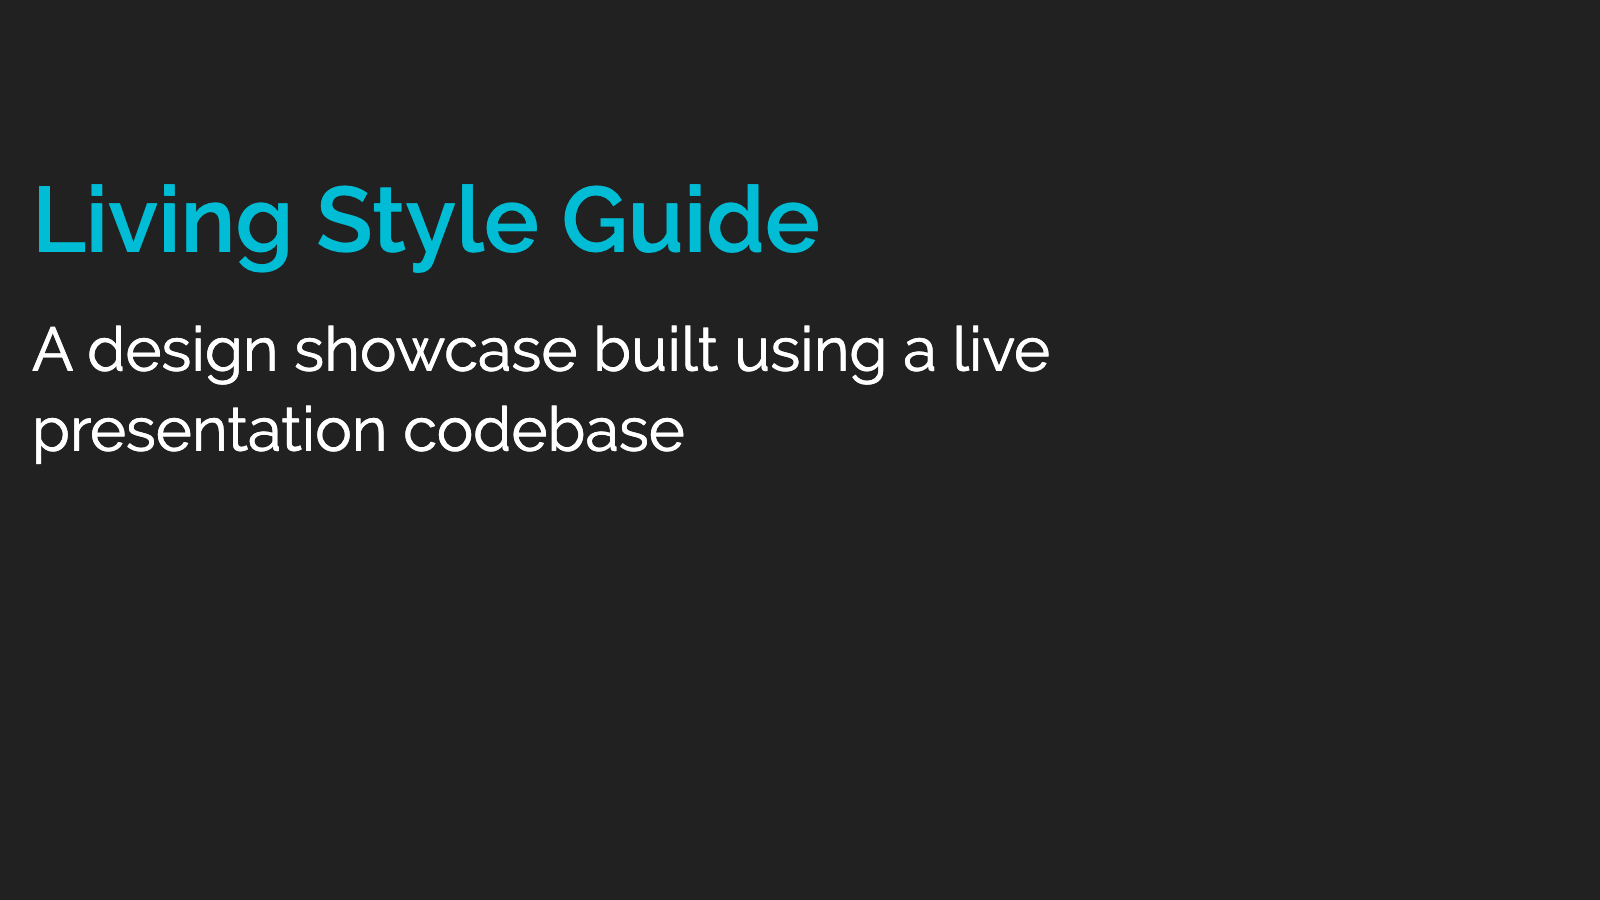 Slide content, Living Style Guide, a design showcase built using a live presentation codebase